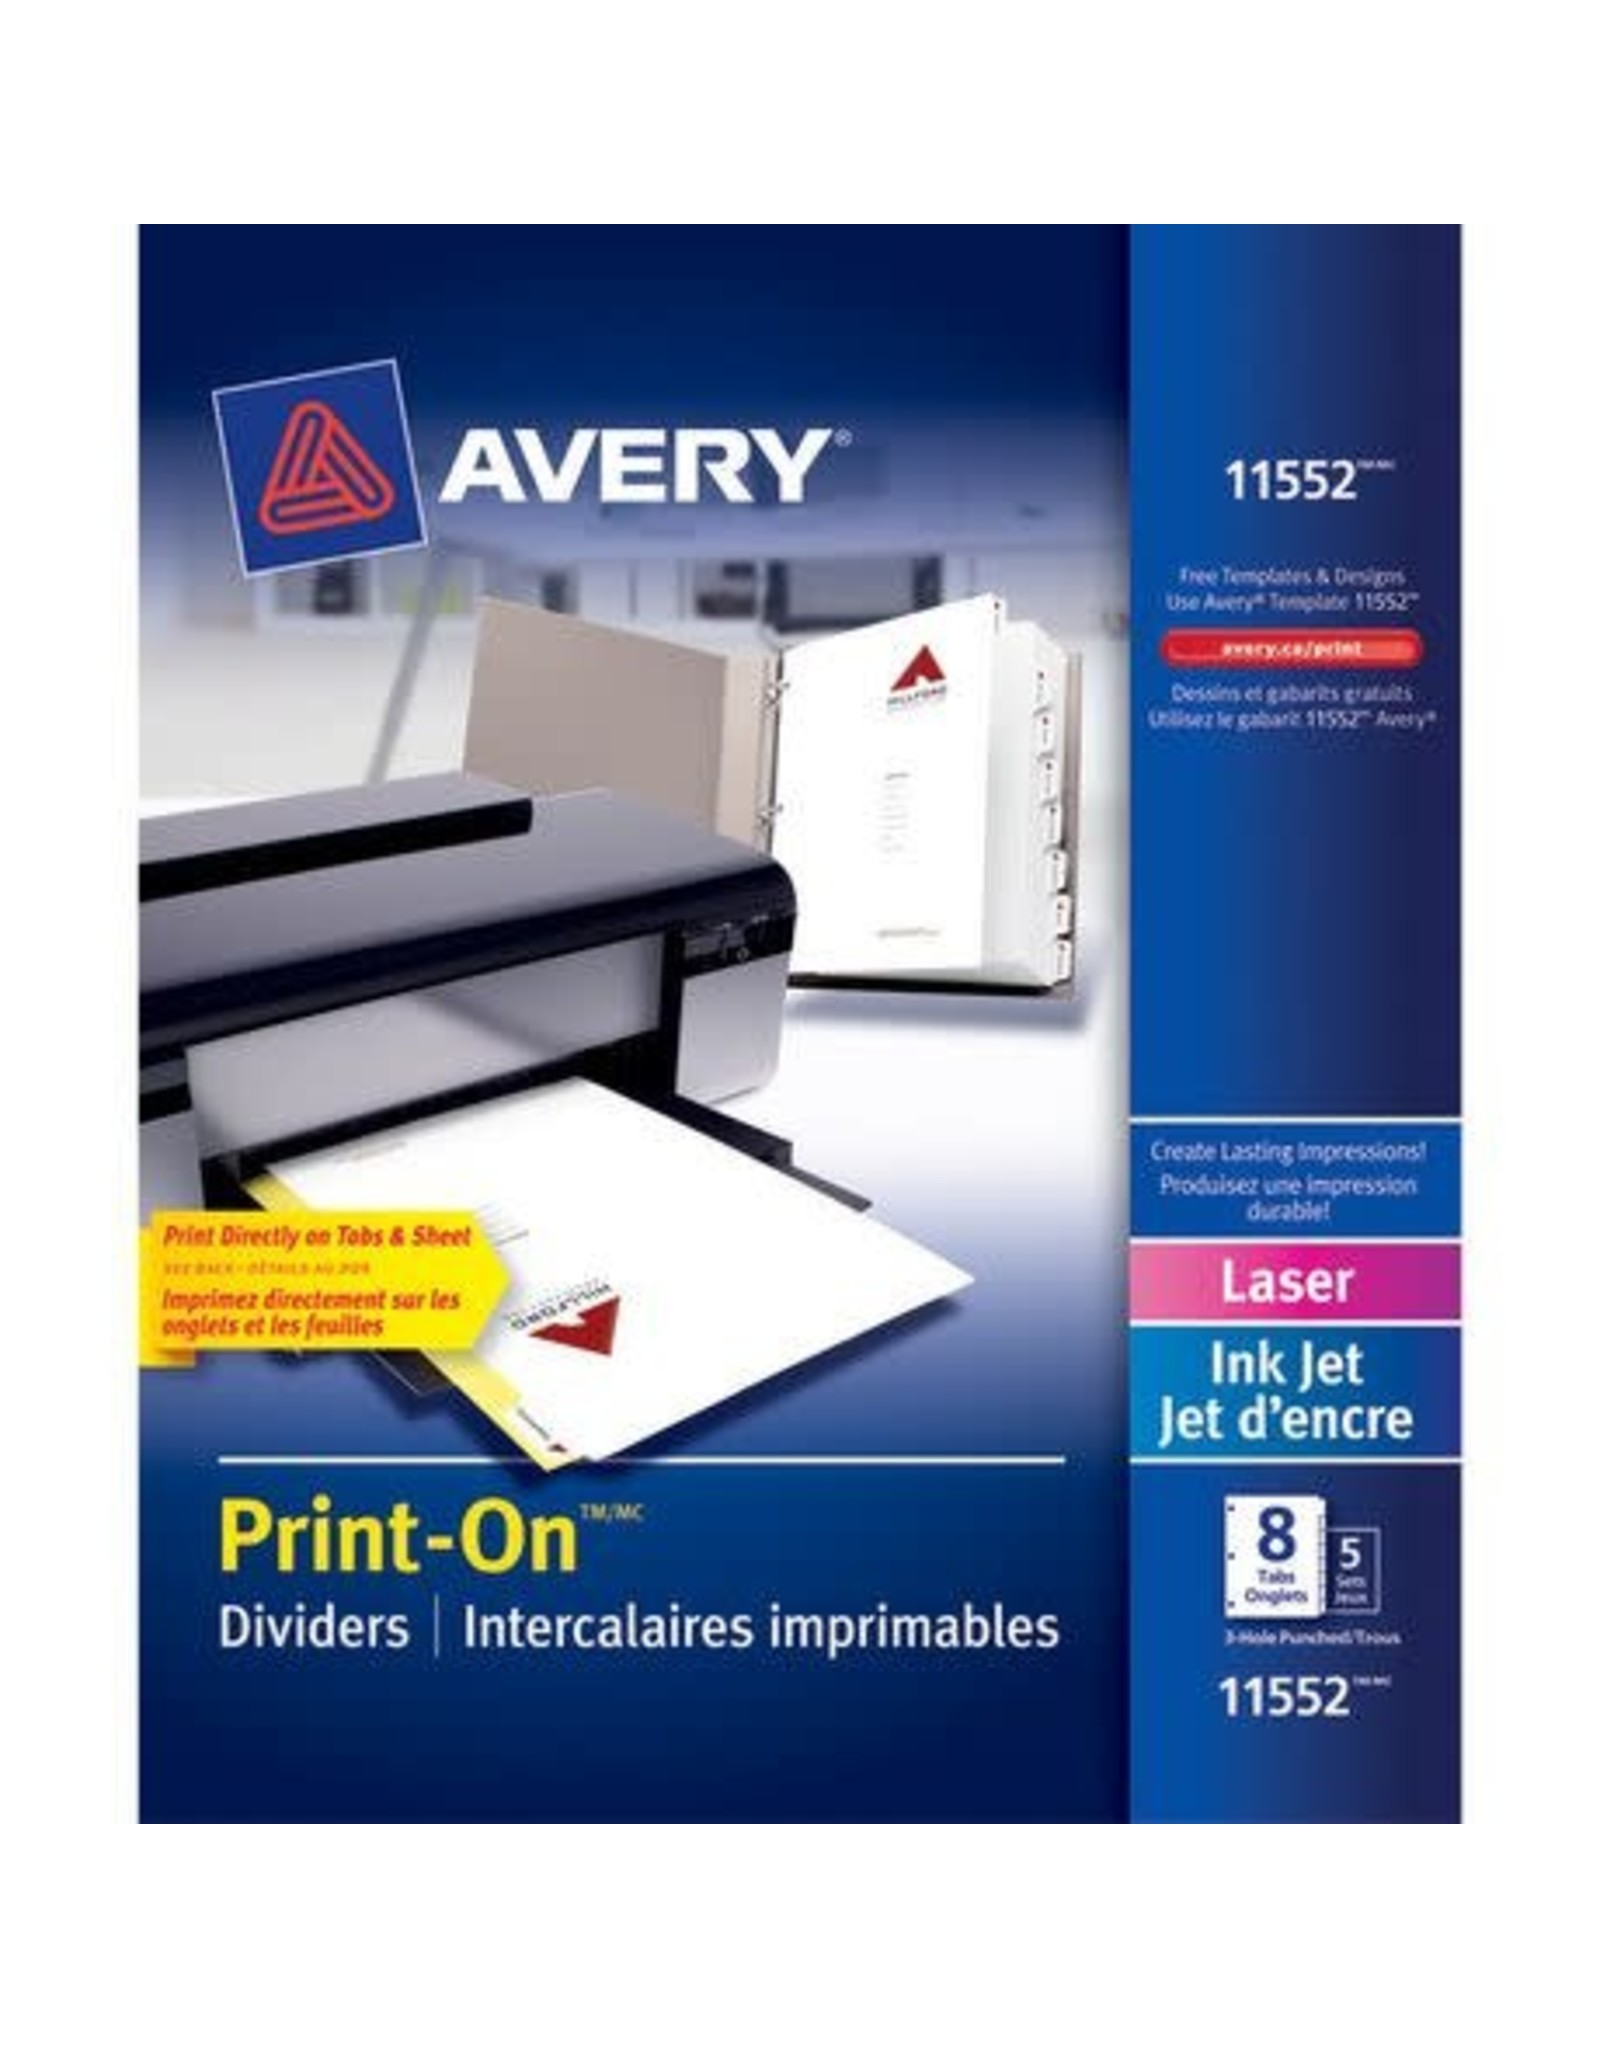 Avery INDEX DIVIDERS-PRINT-ON 8 TAB WHITE, 5 SETS/PACK